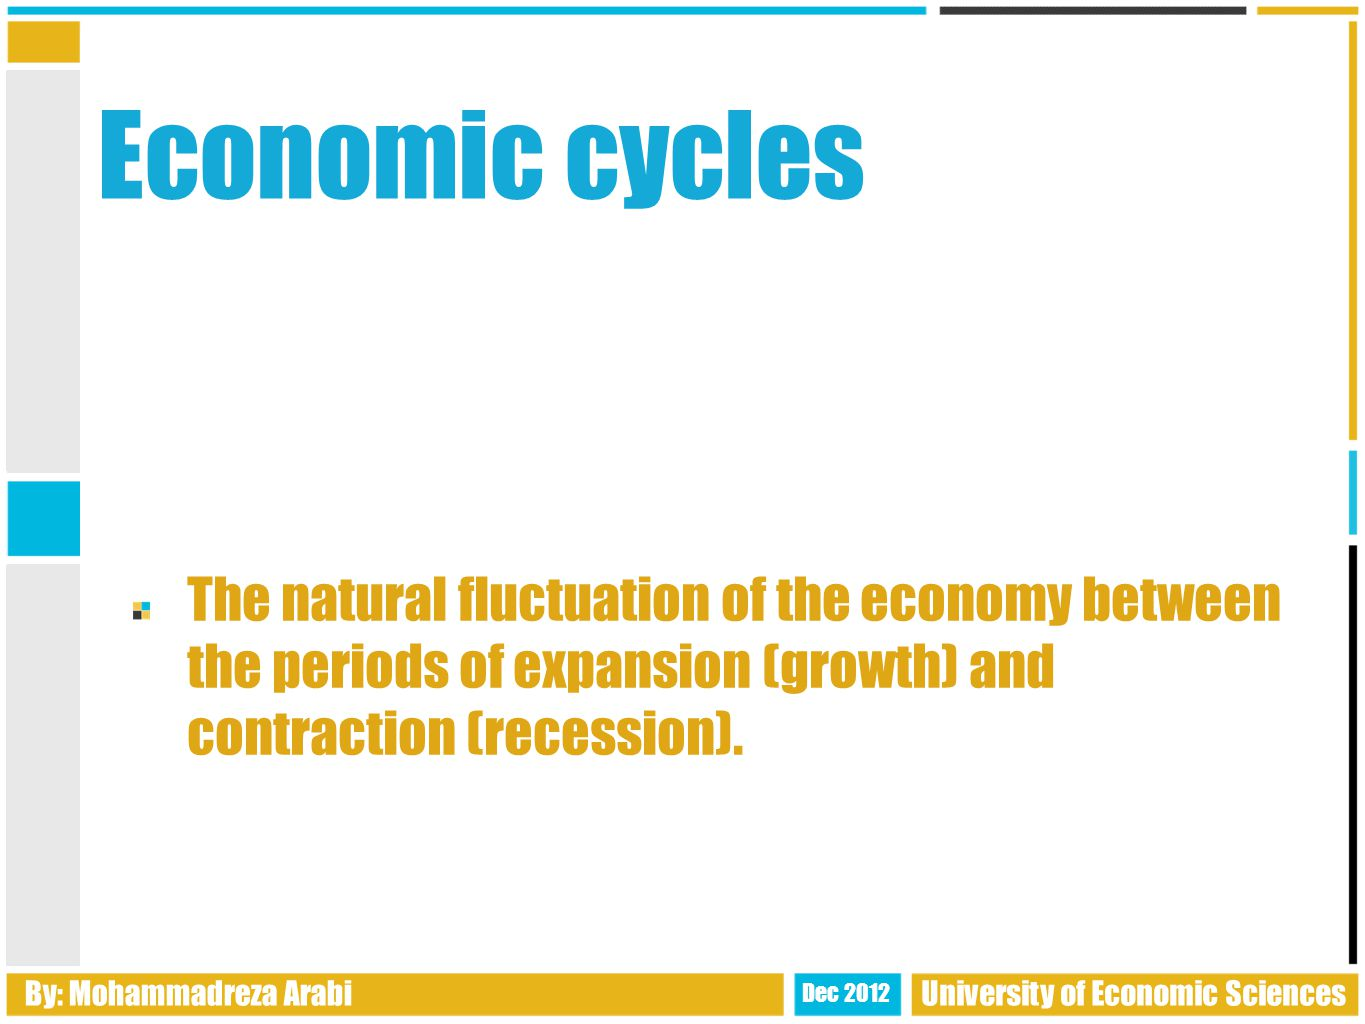 Economic cycles The natural fluctuation of the economy between the periods of expansion (growth) and contraction (recession).